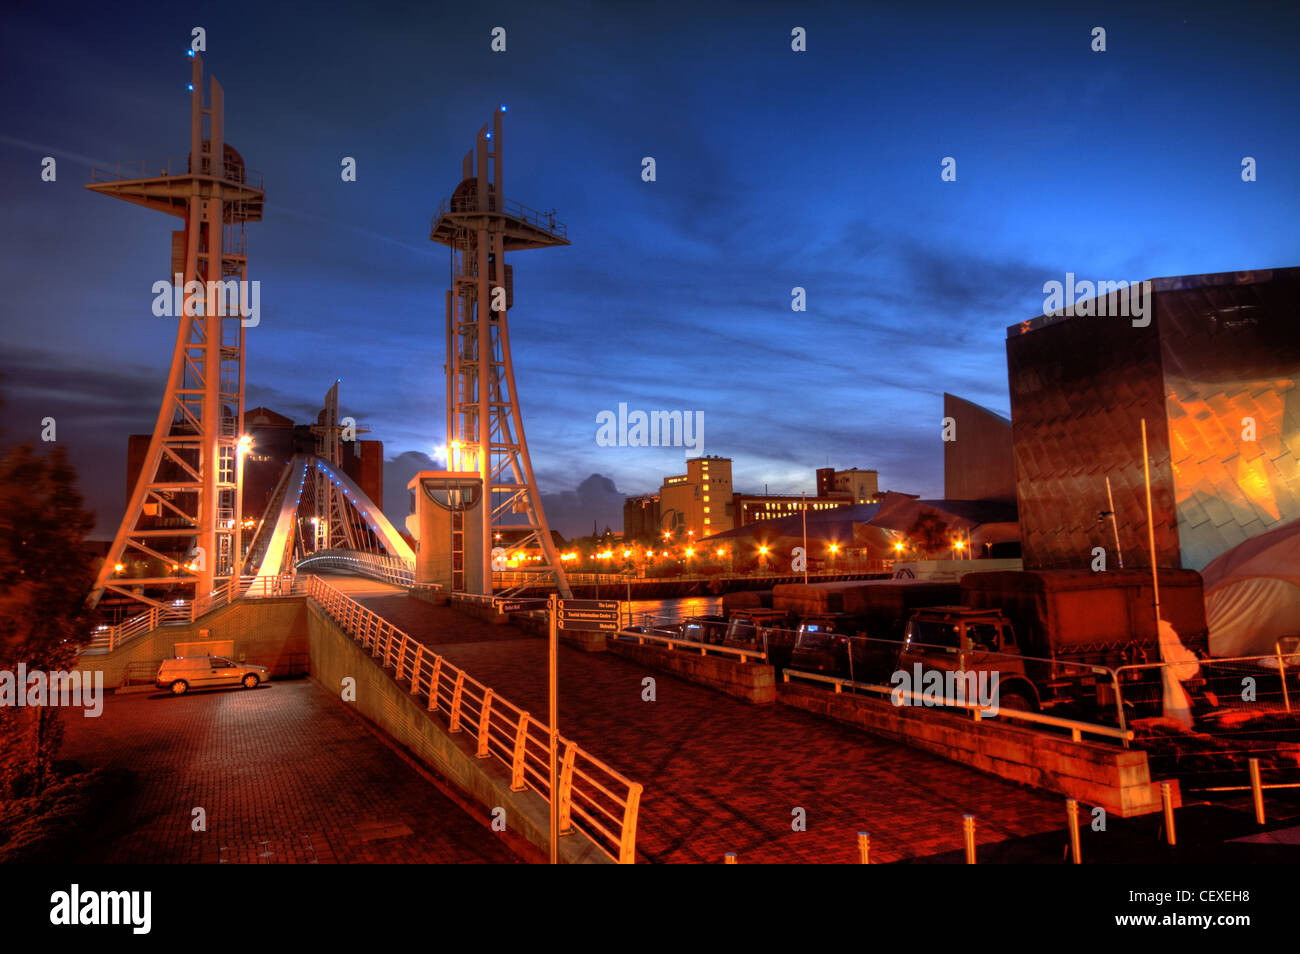 Lowry Salford Quays Millennium Lift Footbridge at dusk - Stock Image